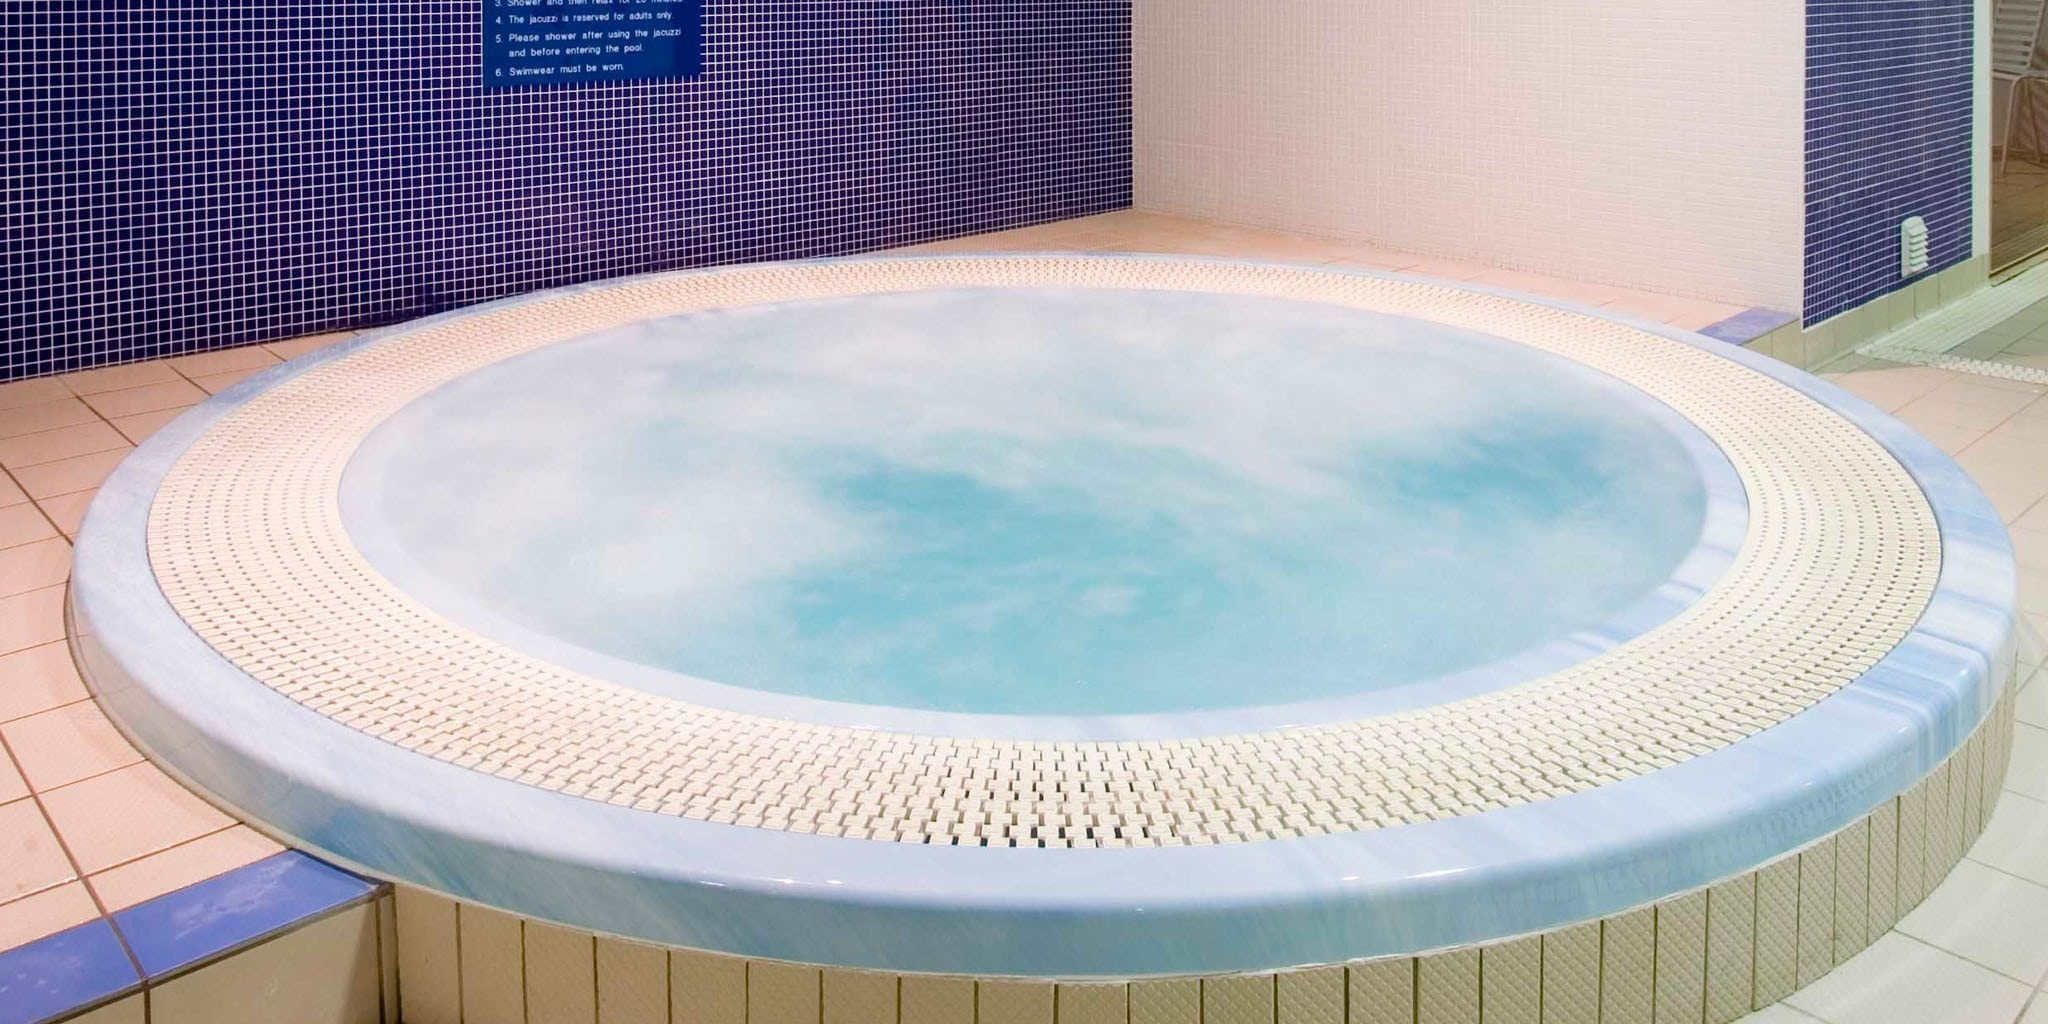 Jacuzzi in Limerick city leisure centre